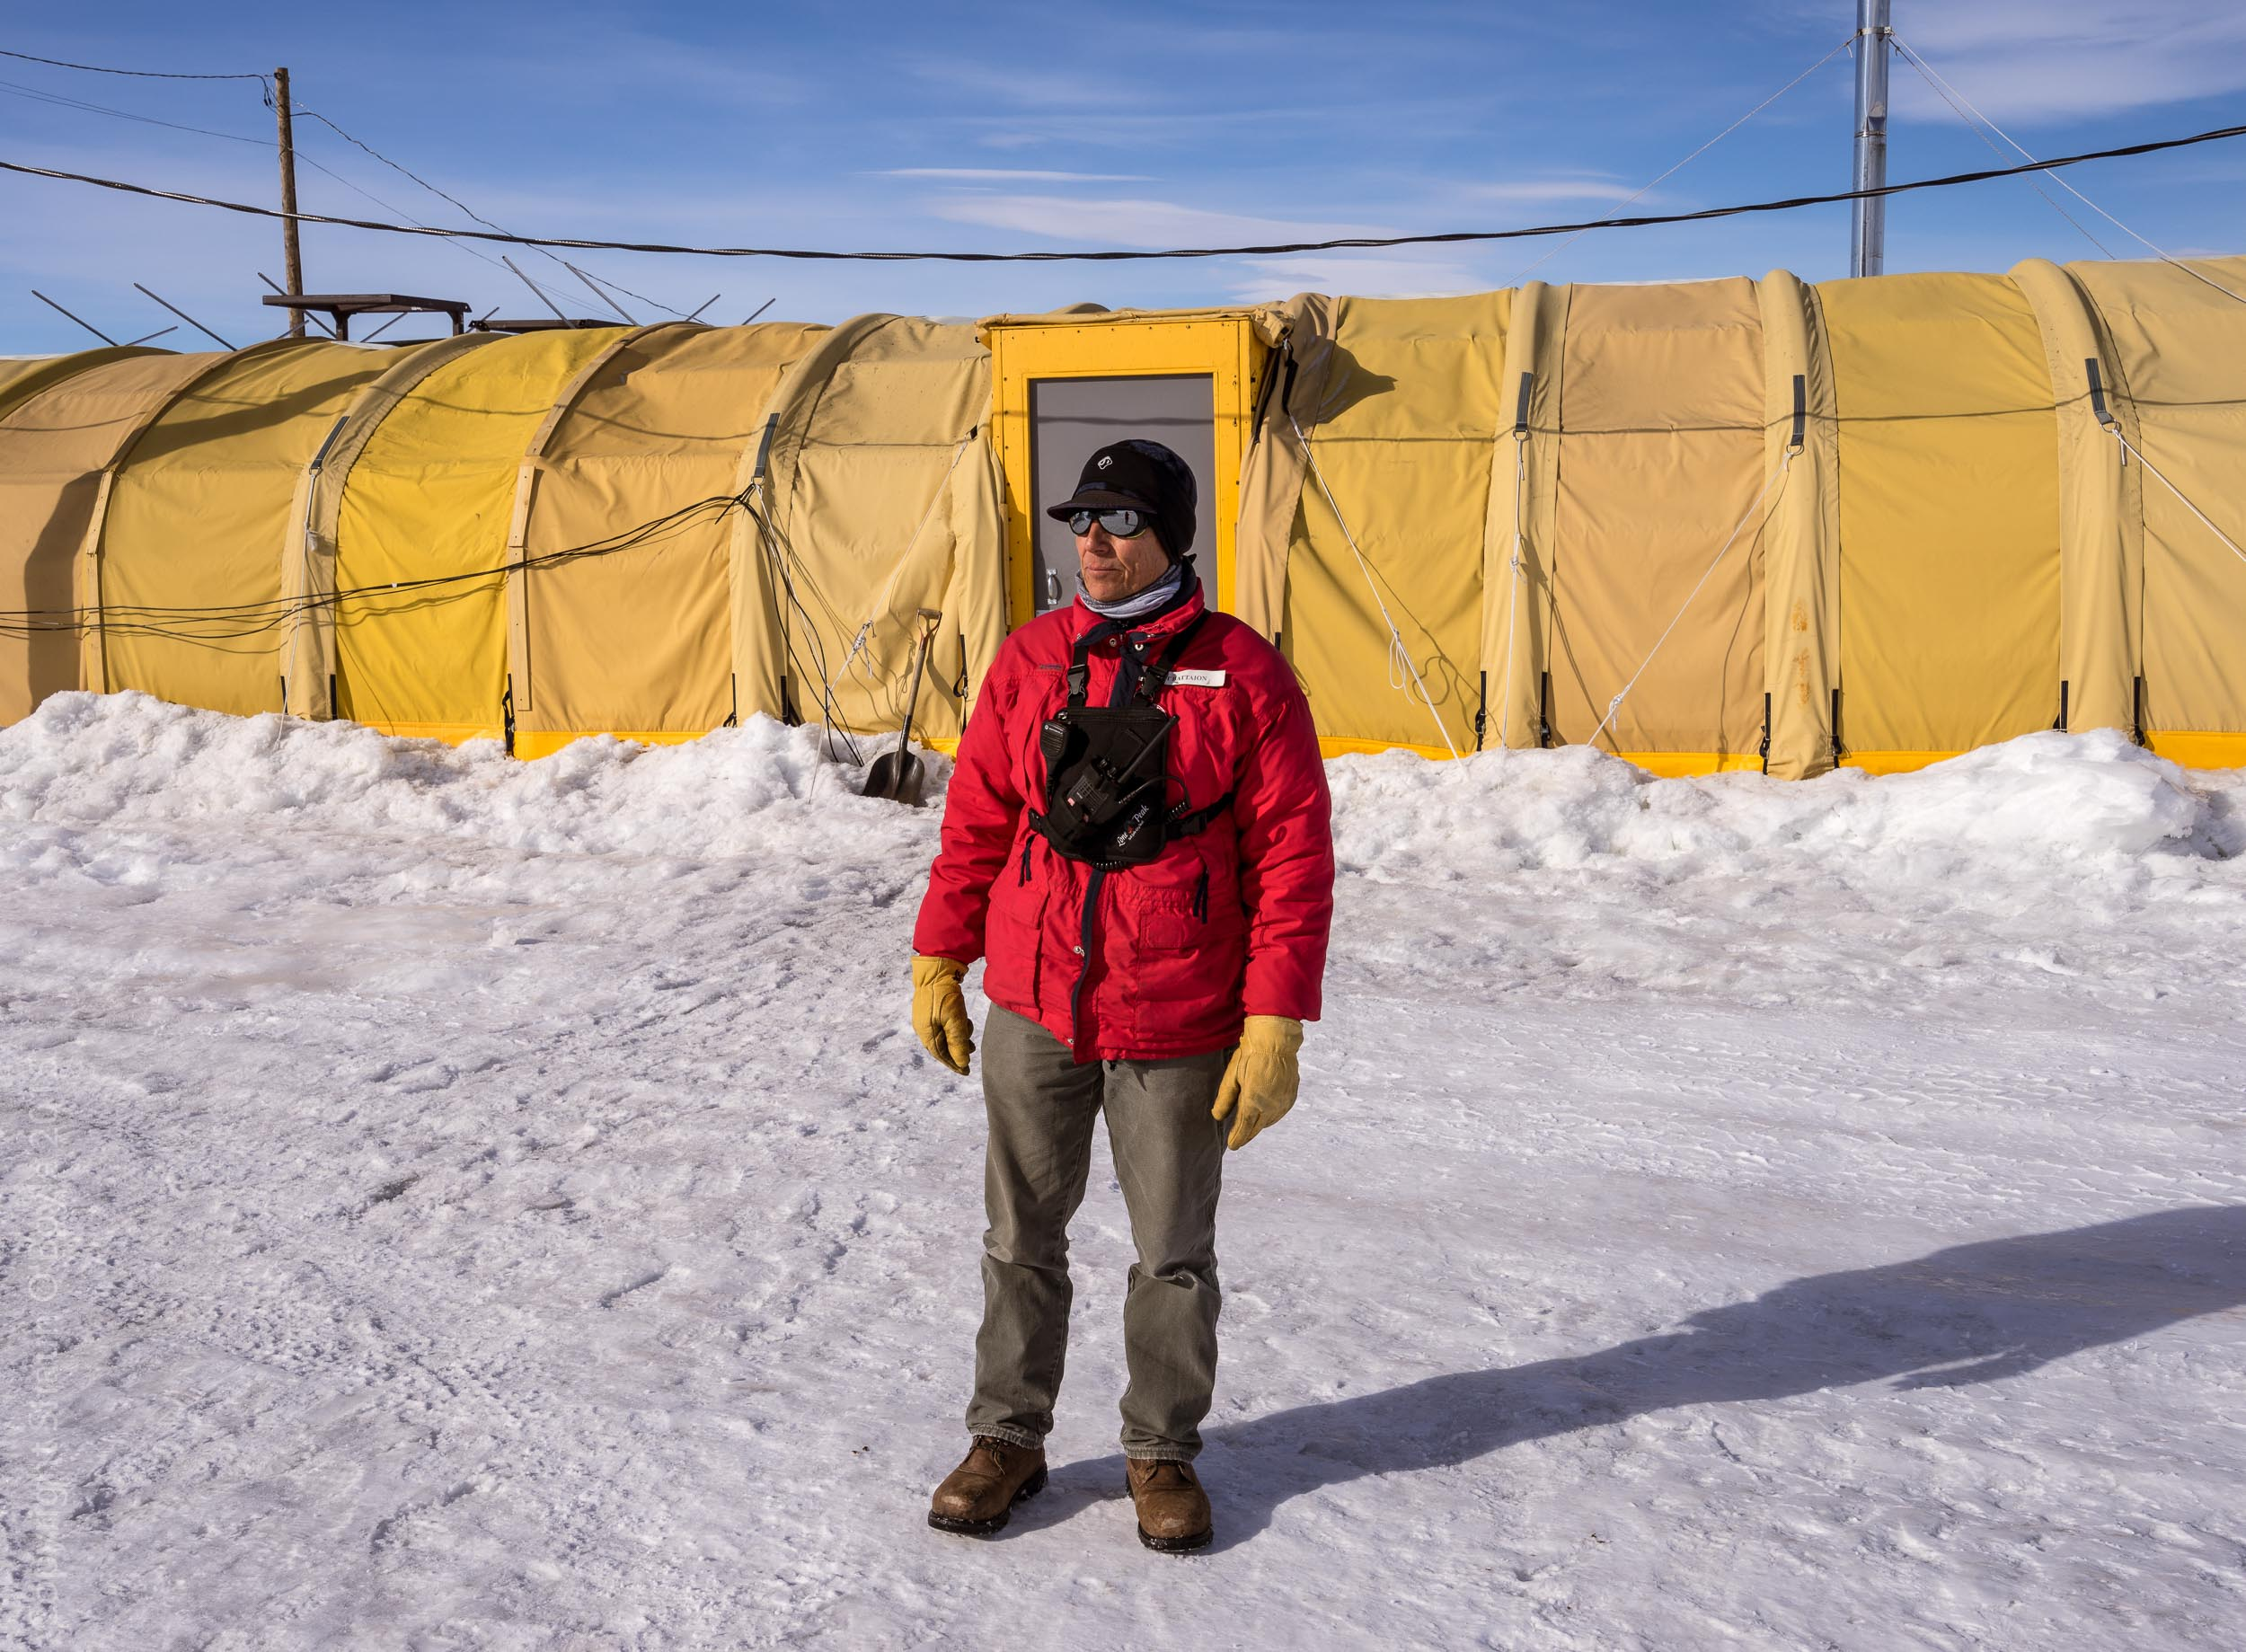 Scott Battaion, LDB camp manager gave me an overview of the project and a tour of the site before letting me photograph on my own.